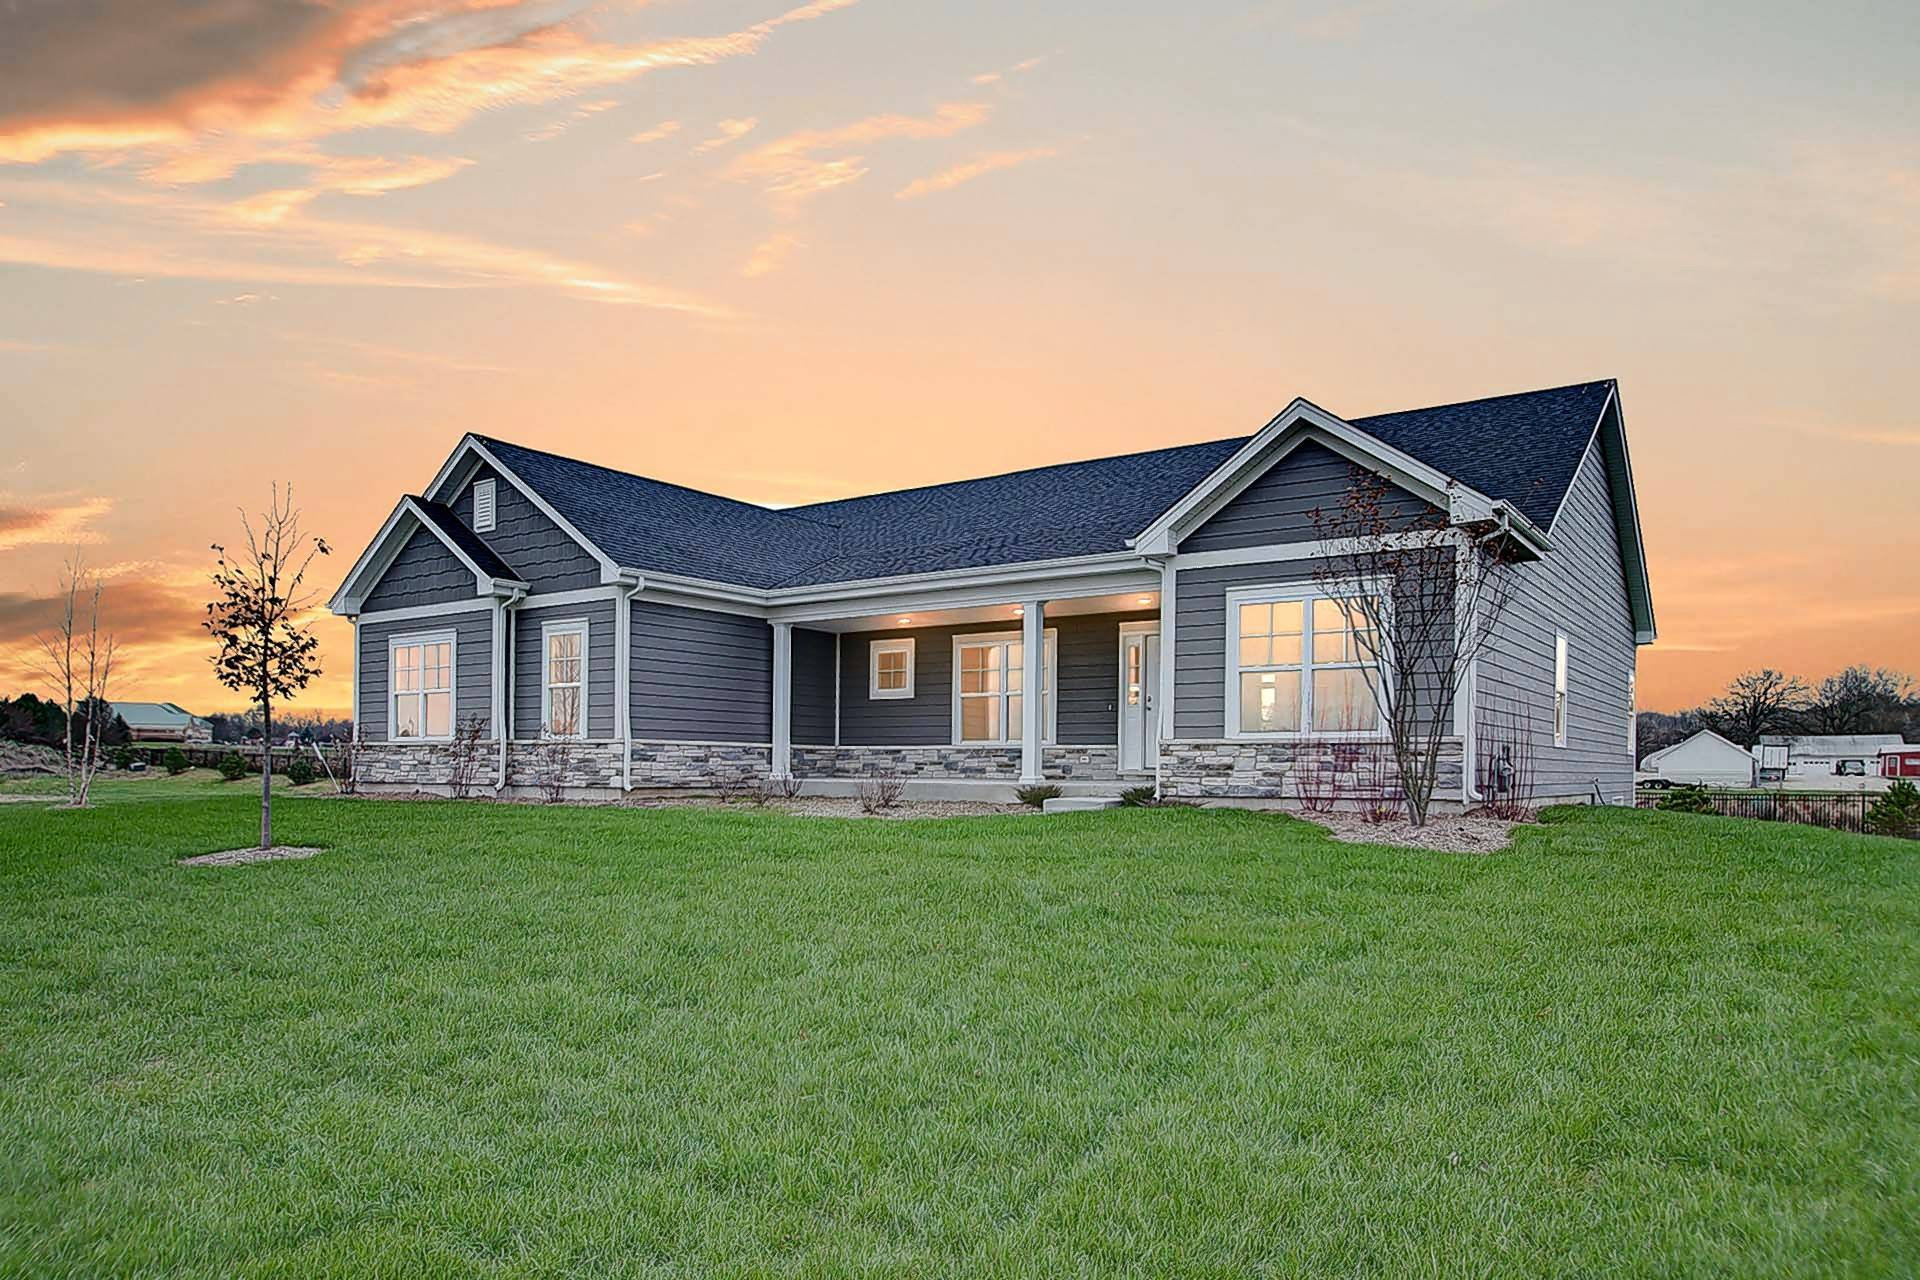 Shodeen Homes offers ranch-style homes that many millennials seem to prefer.